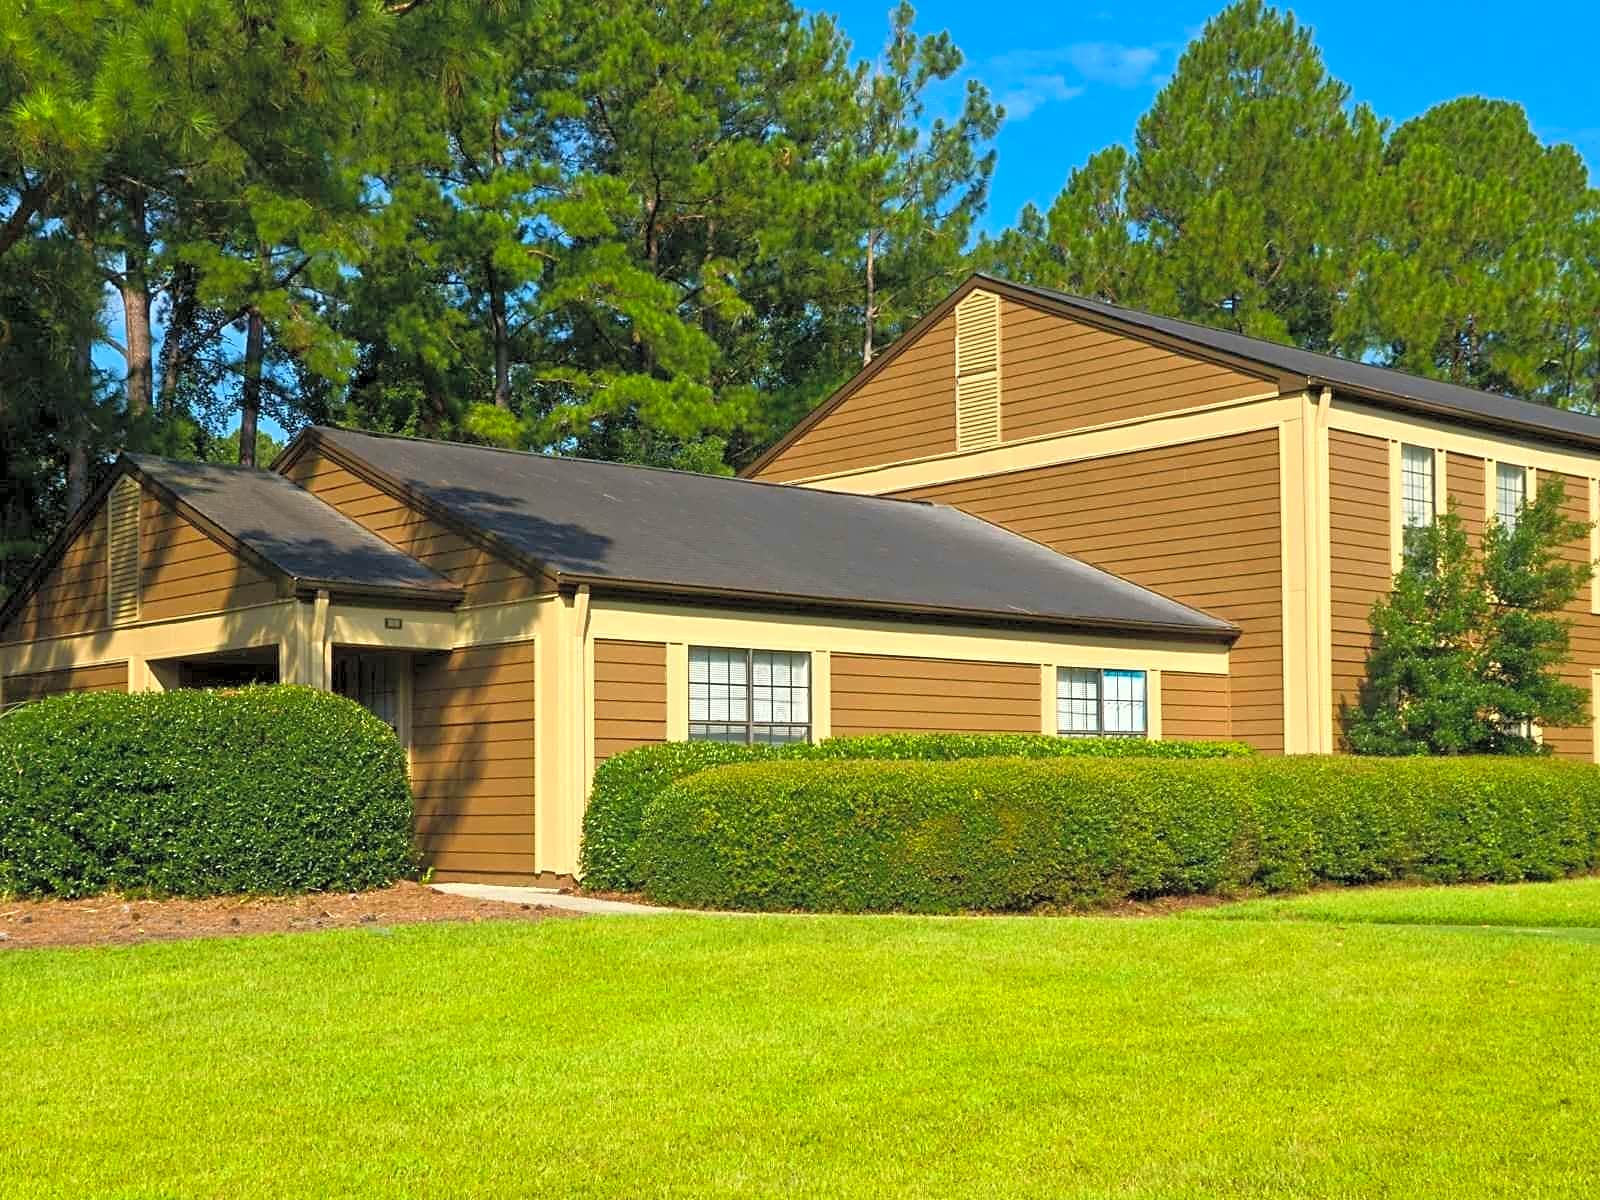 Apartments and houses for rent near me in brunswick - 4 bedroom houses for rent in brunswick ga ...